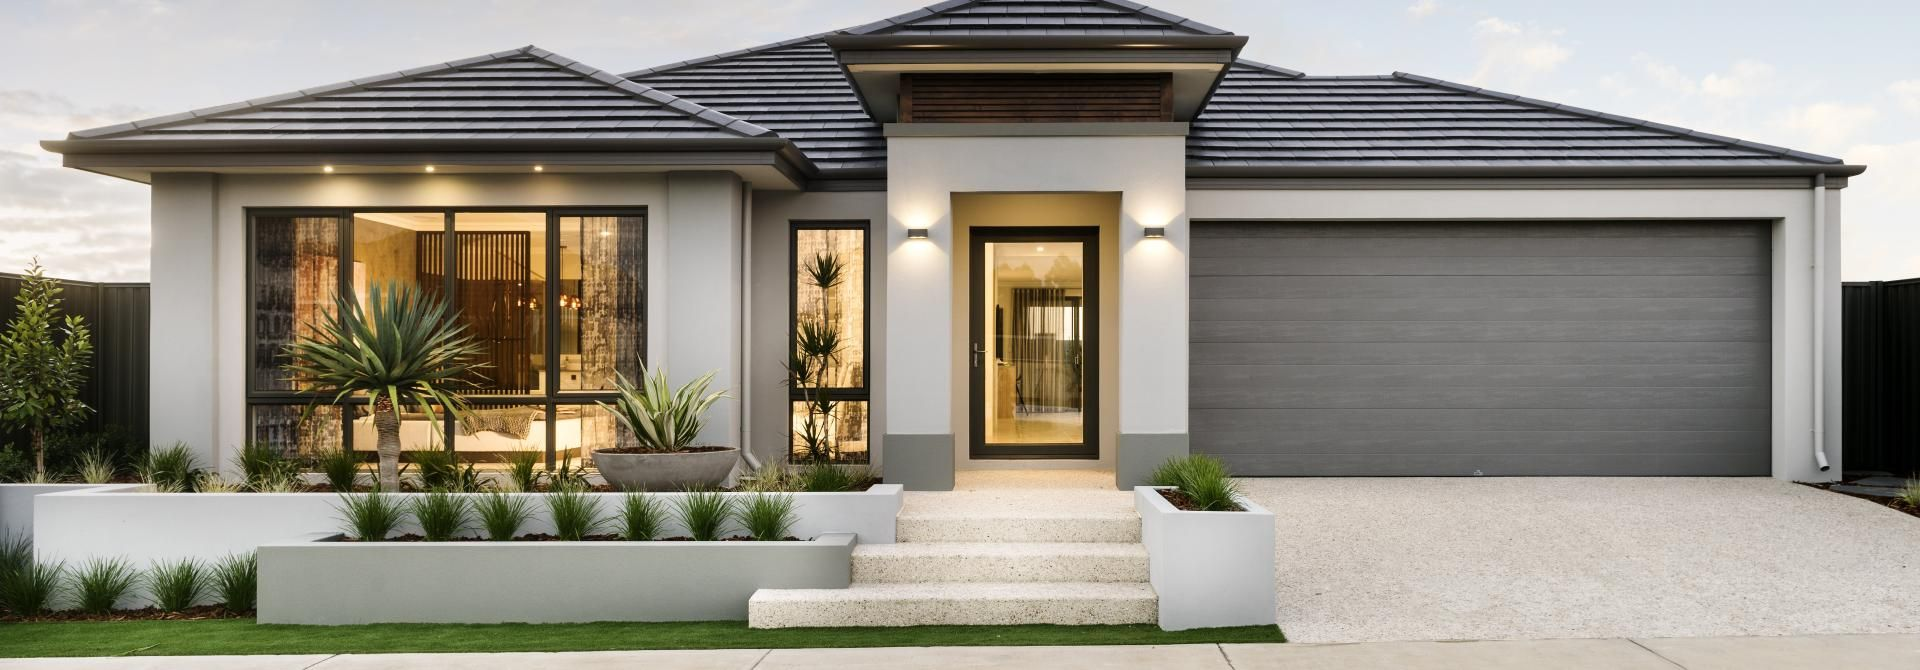 Affinity I Dale Alcock Homes In 2019 House Design